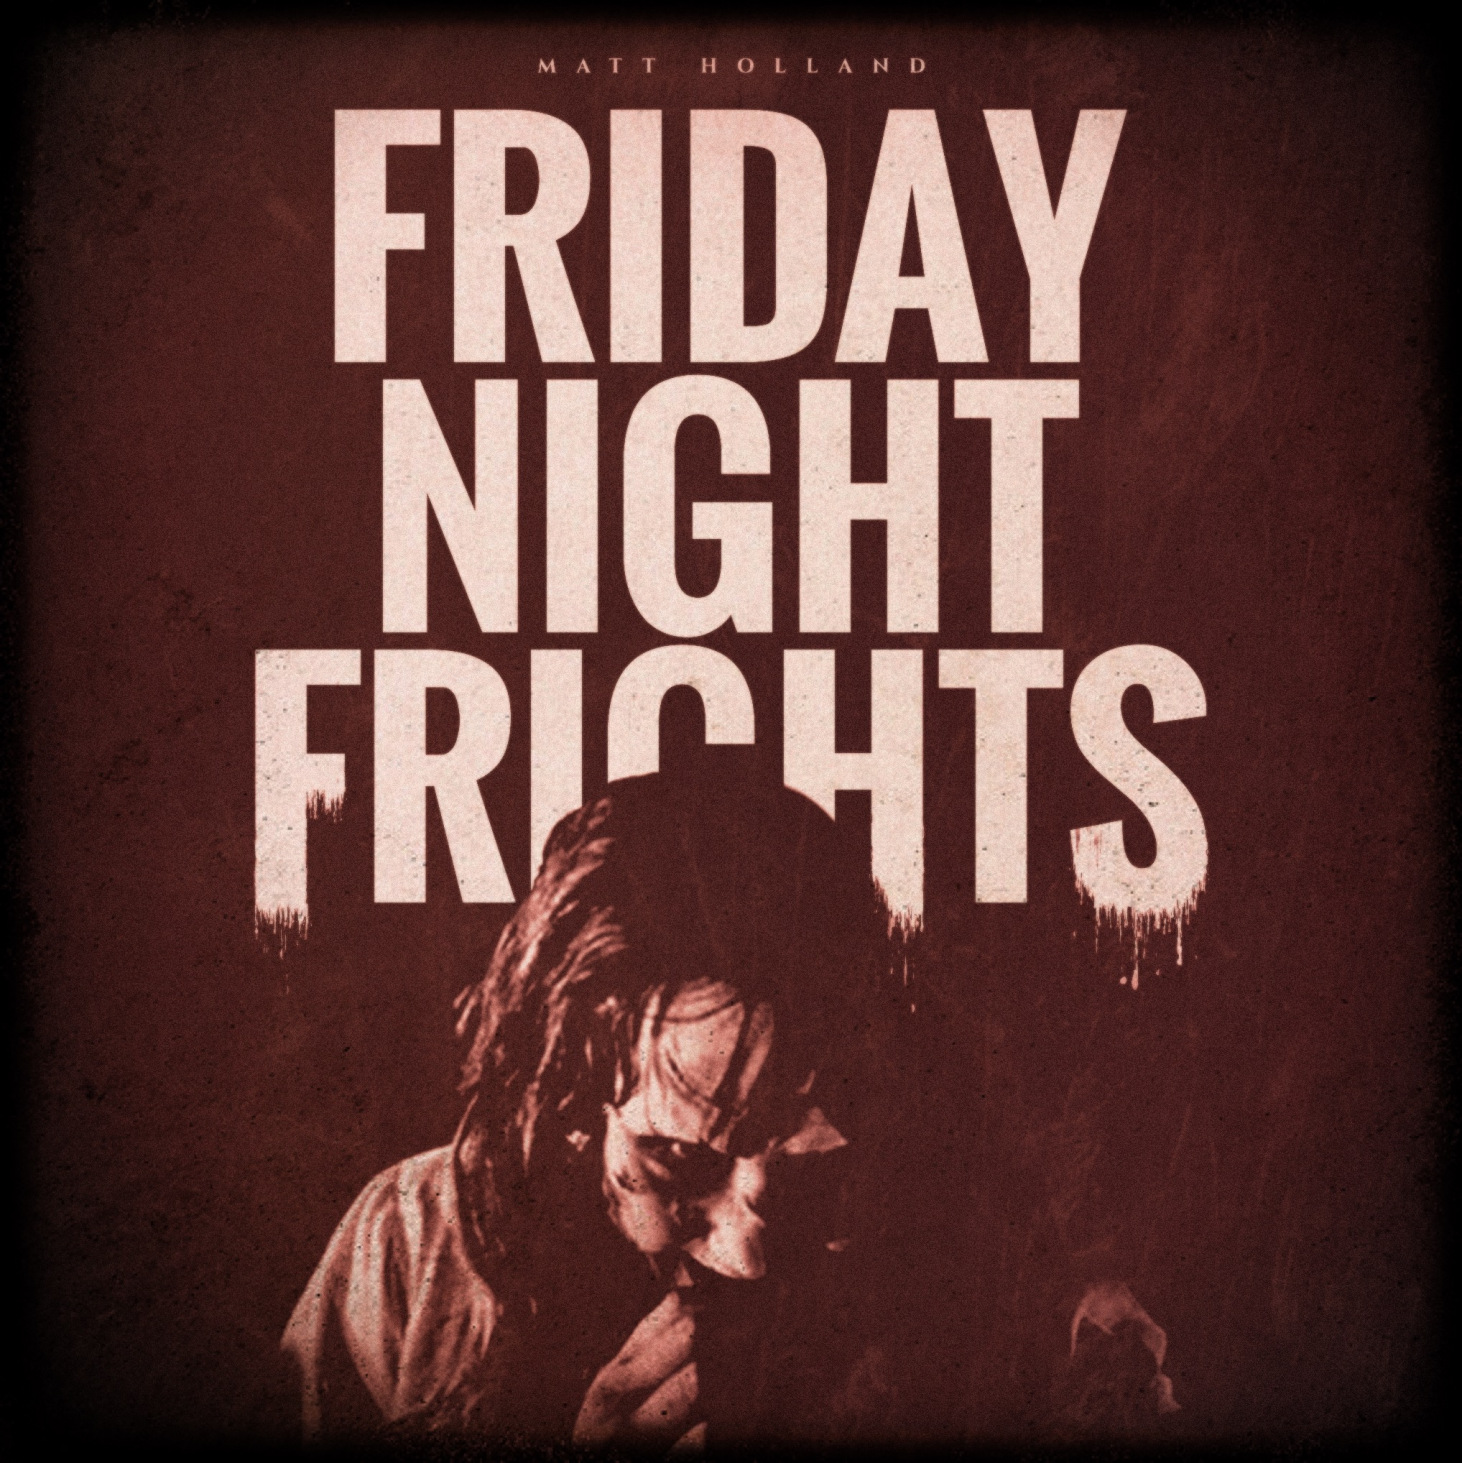 Friday Night Frights!!!